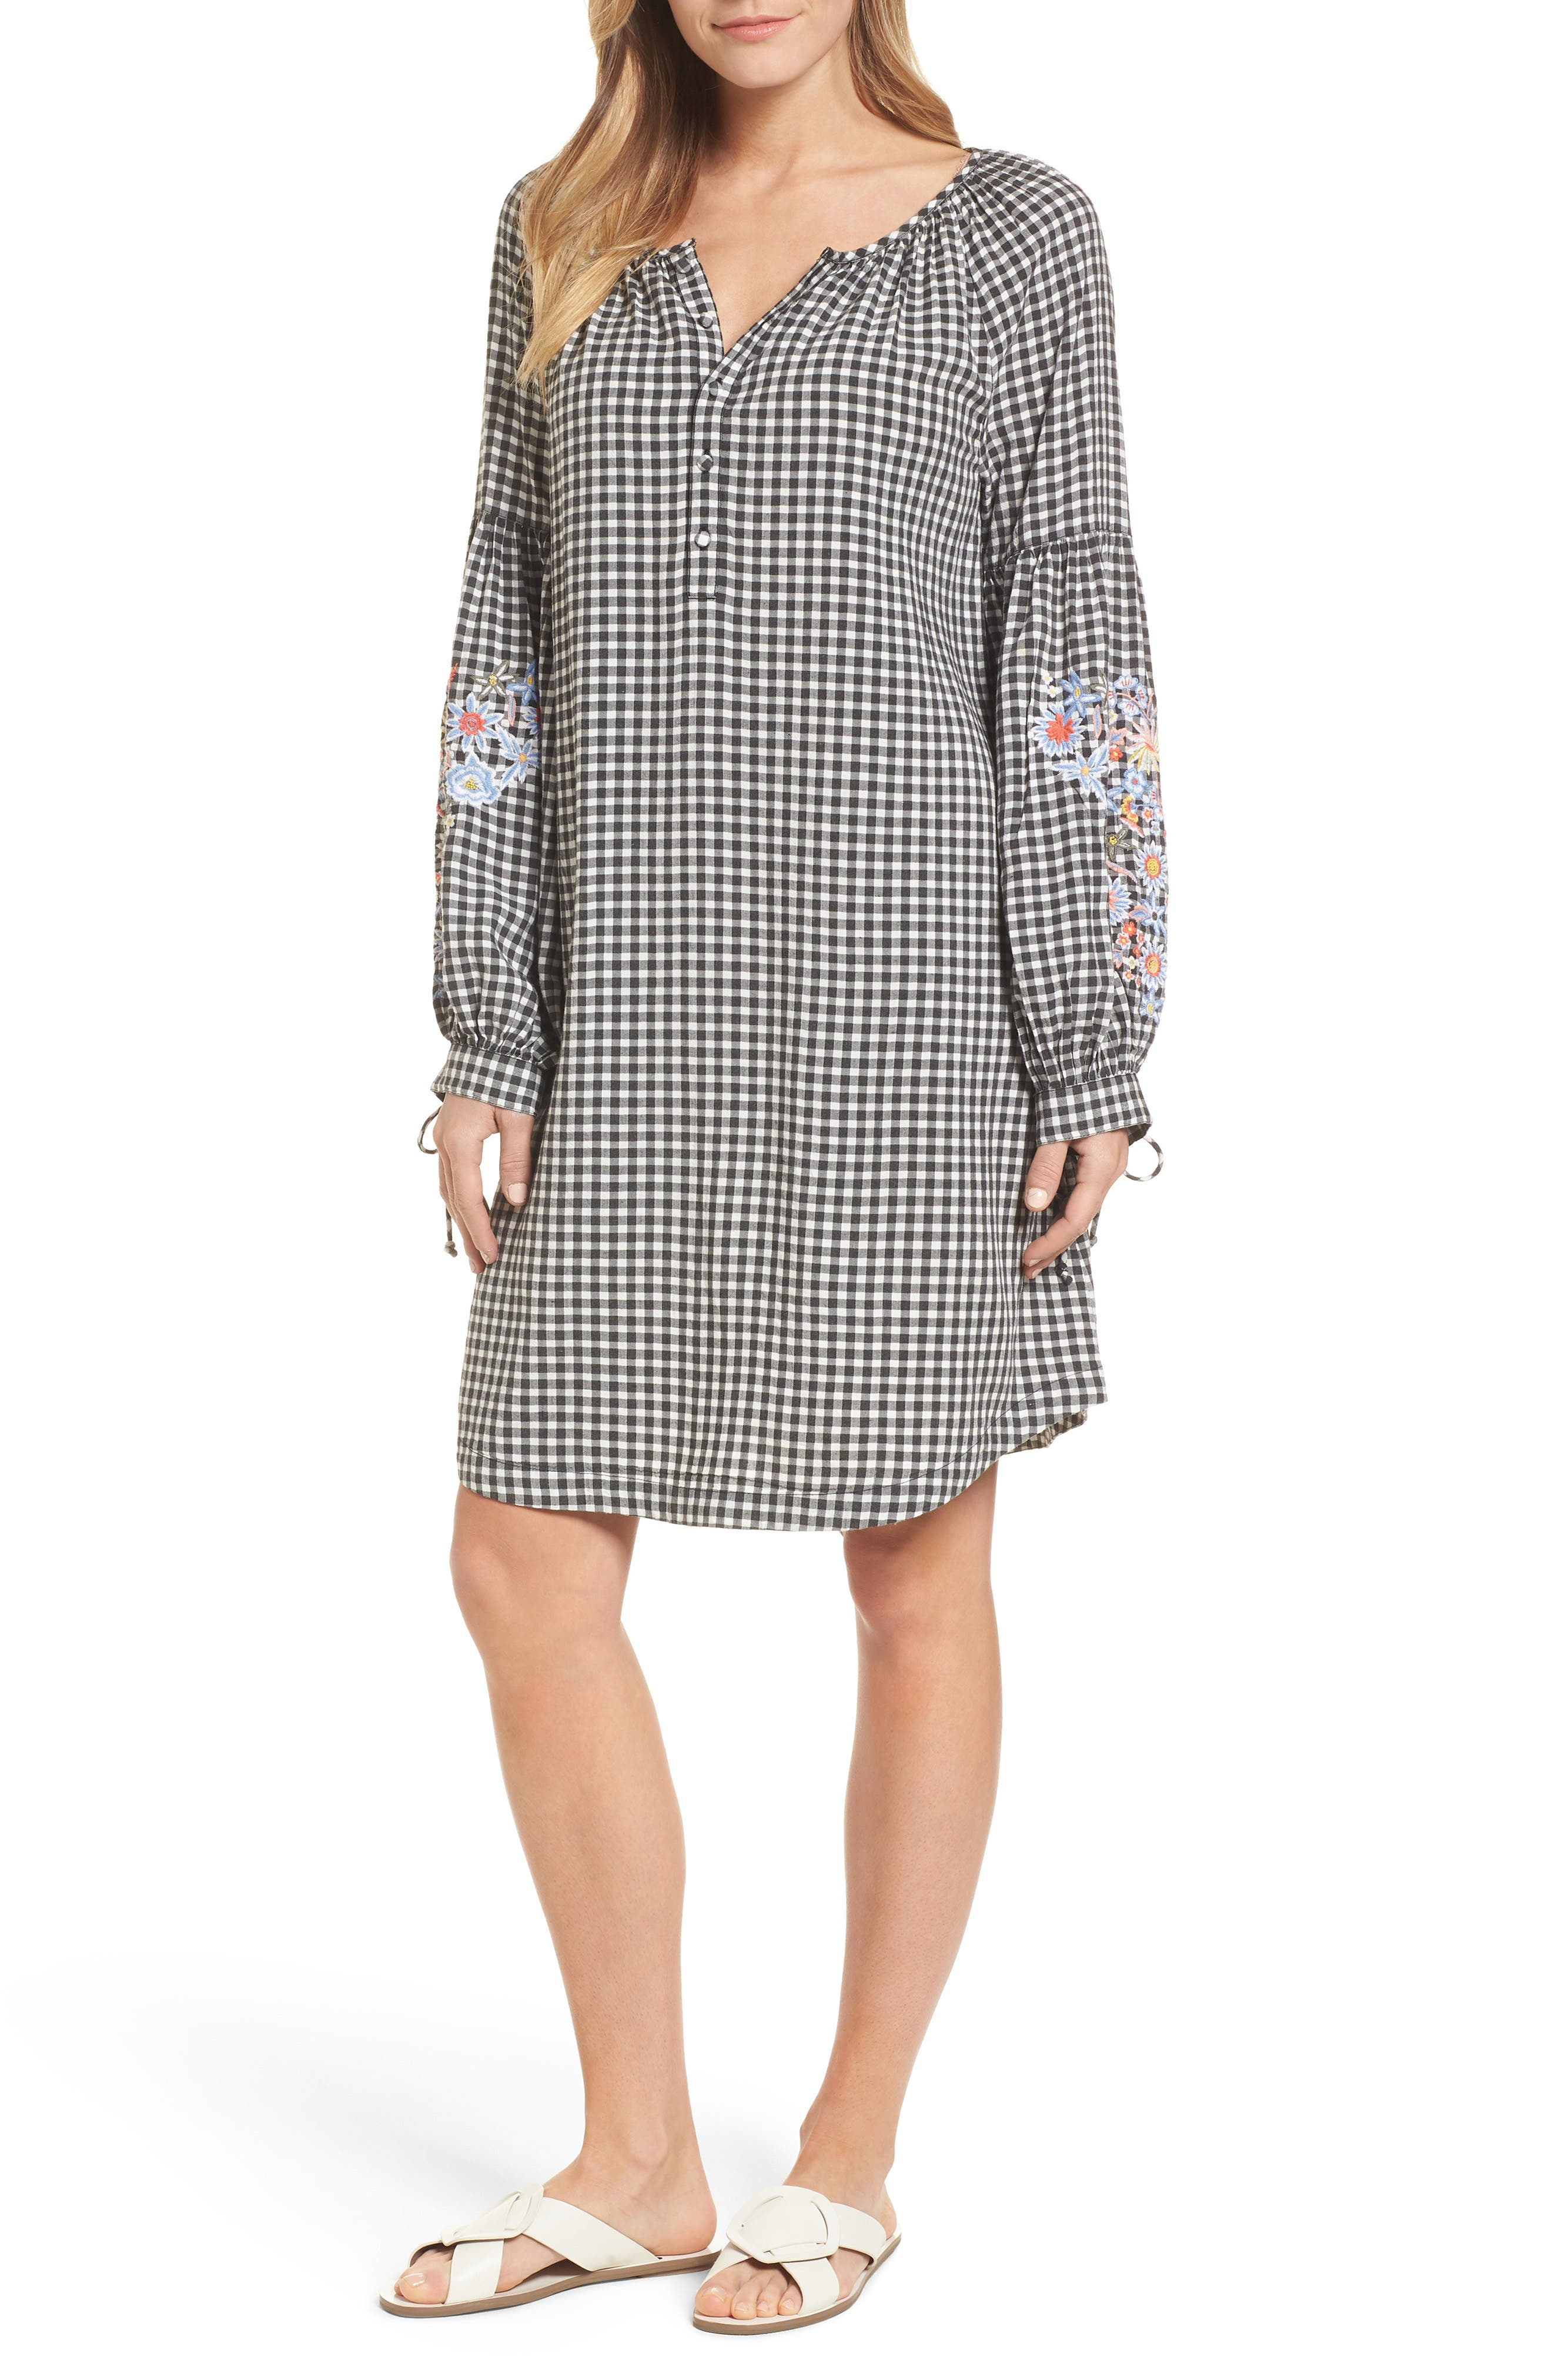 Embroidered Sleeve Shift Dress,                         Main,                         color, Black-White Gingham